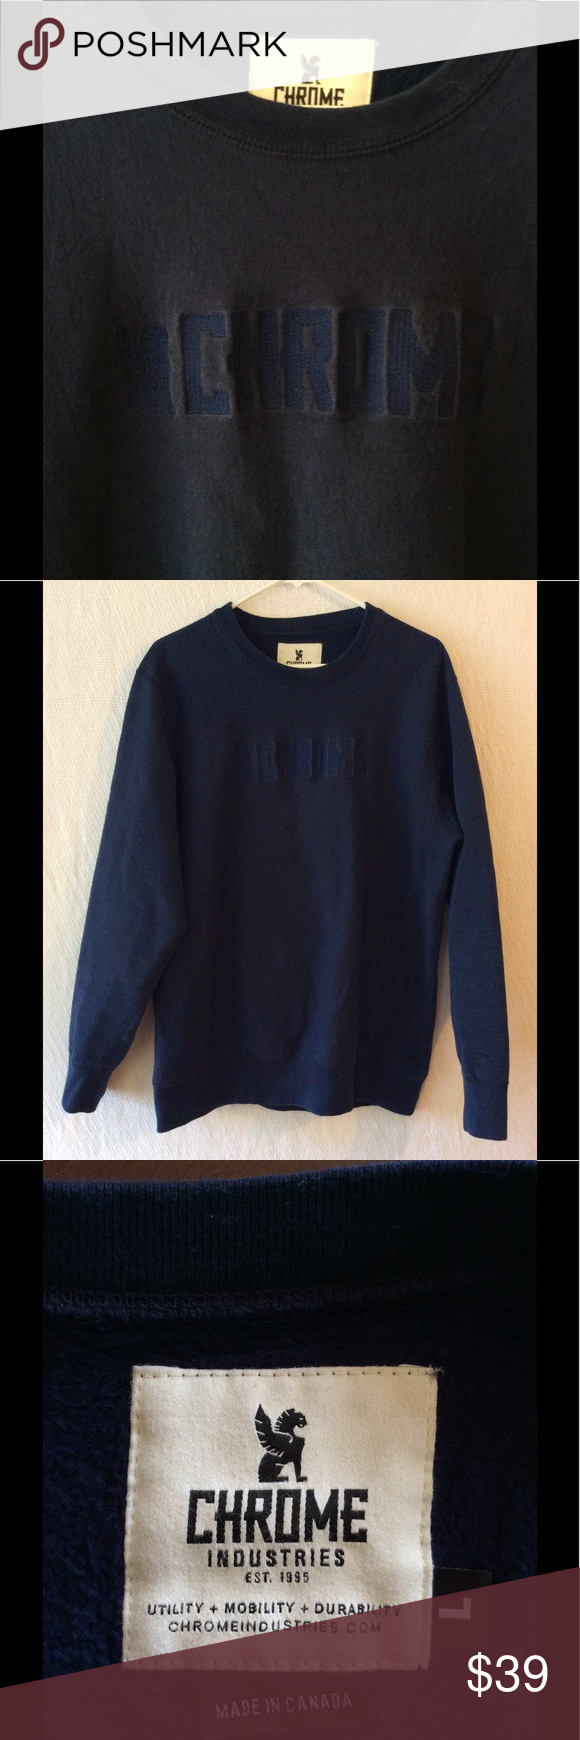 """Chrome Cycling Sweatshirt Men's Chrome Cycling Sweatshirt in navy blue.  Size large; 22.5"""" width, 29"""" length.  100% cotton.  Really nice, heavy, warm sweatshirt in very good used condition.  Very well made; its quality is evident when you feel it. Chrome Shirts Sweatshirts & Hoodies"""